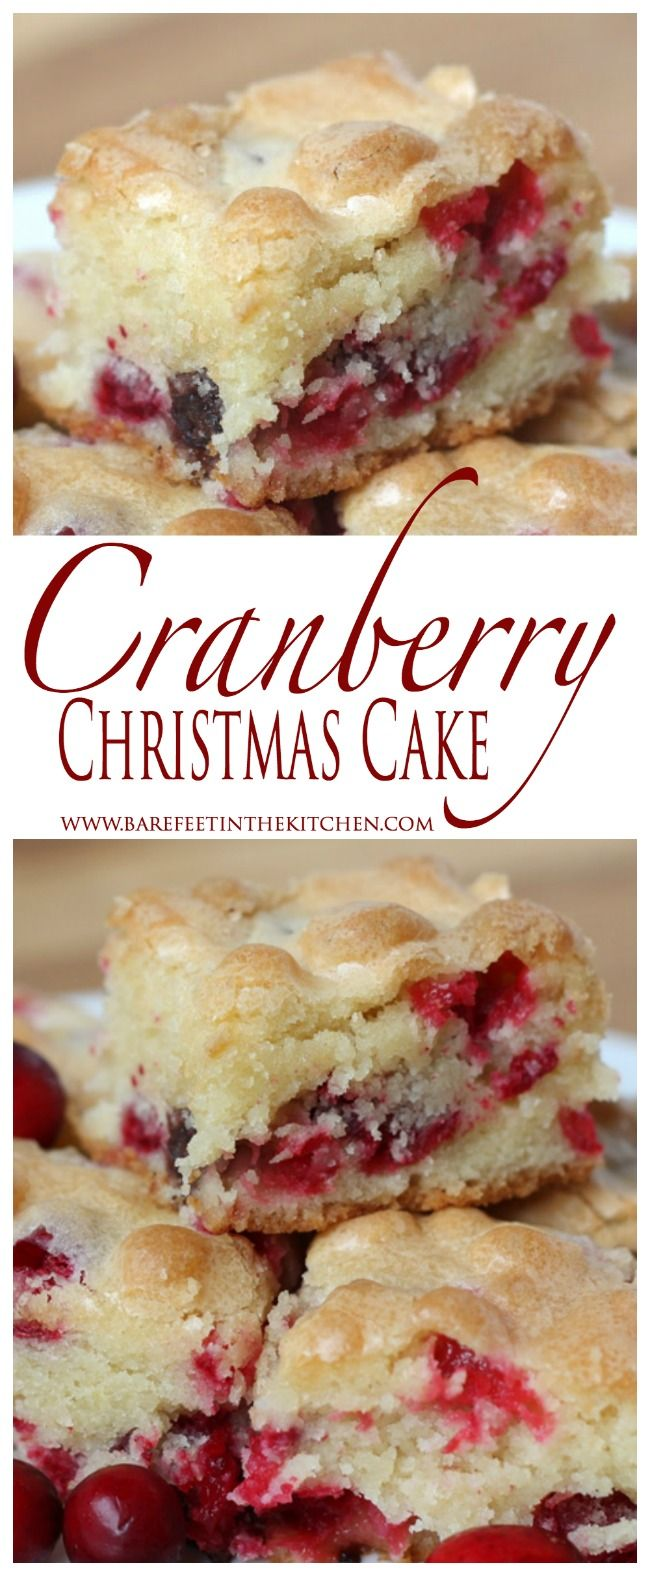 cranberry christmas cake is the ultimate holiday dessert get the recipe at barefeetinthekitchencom